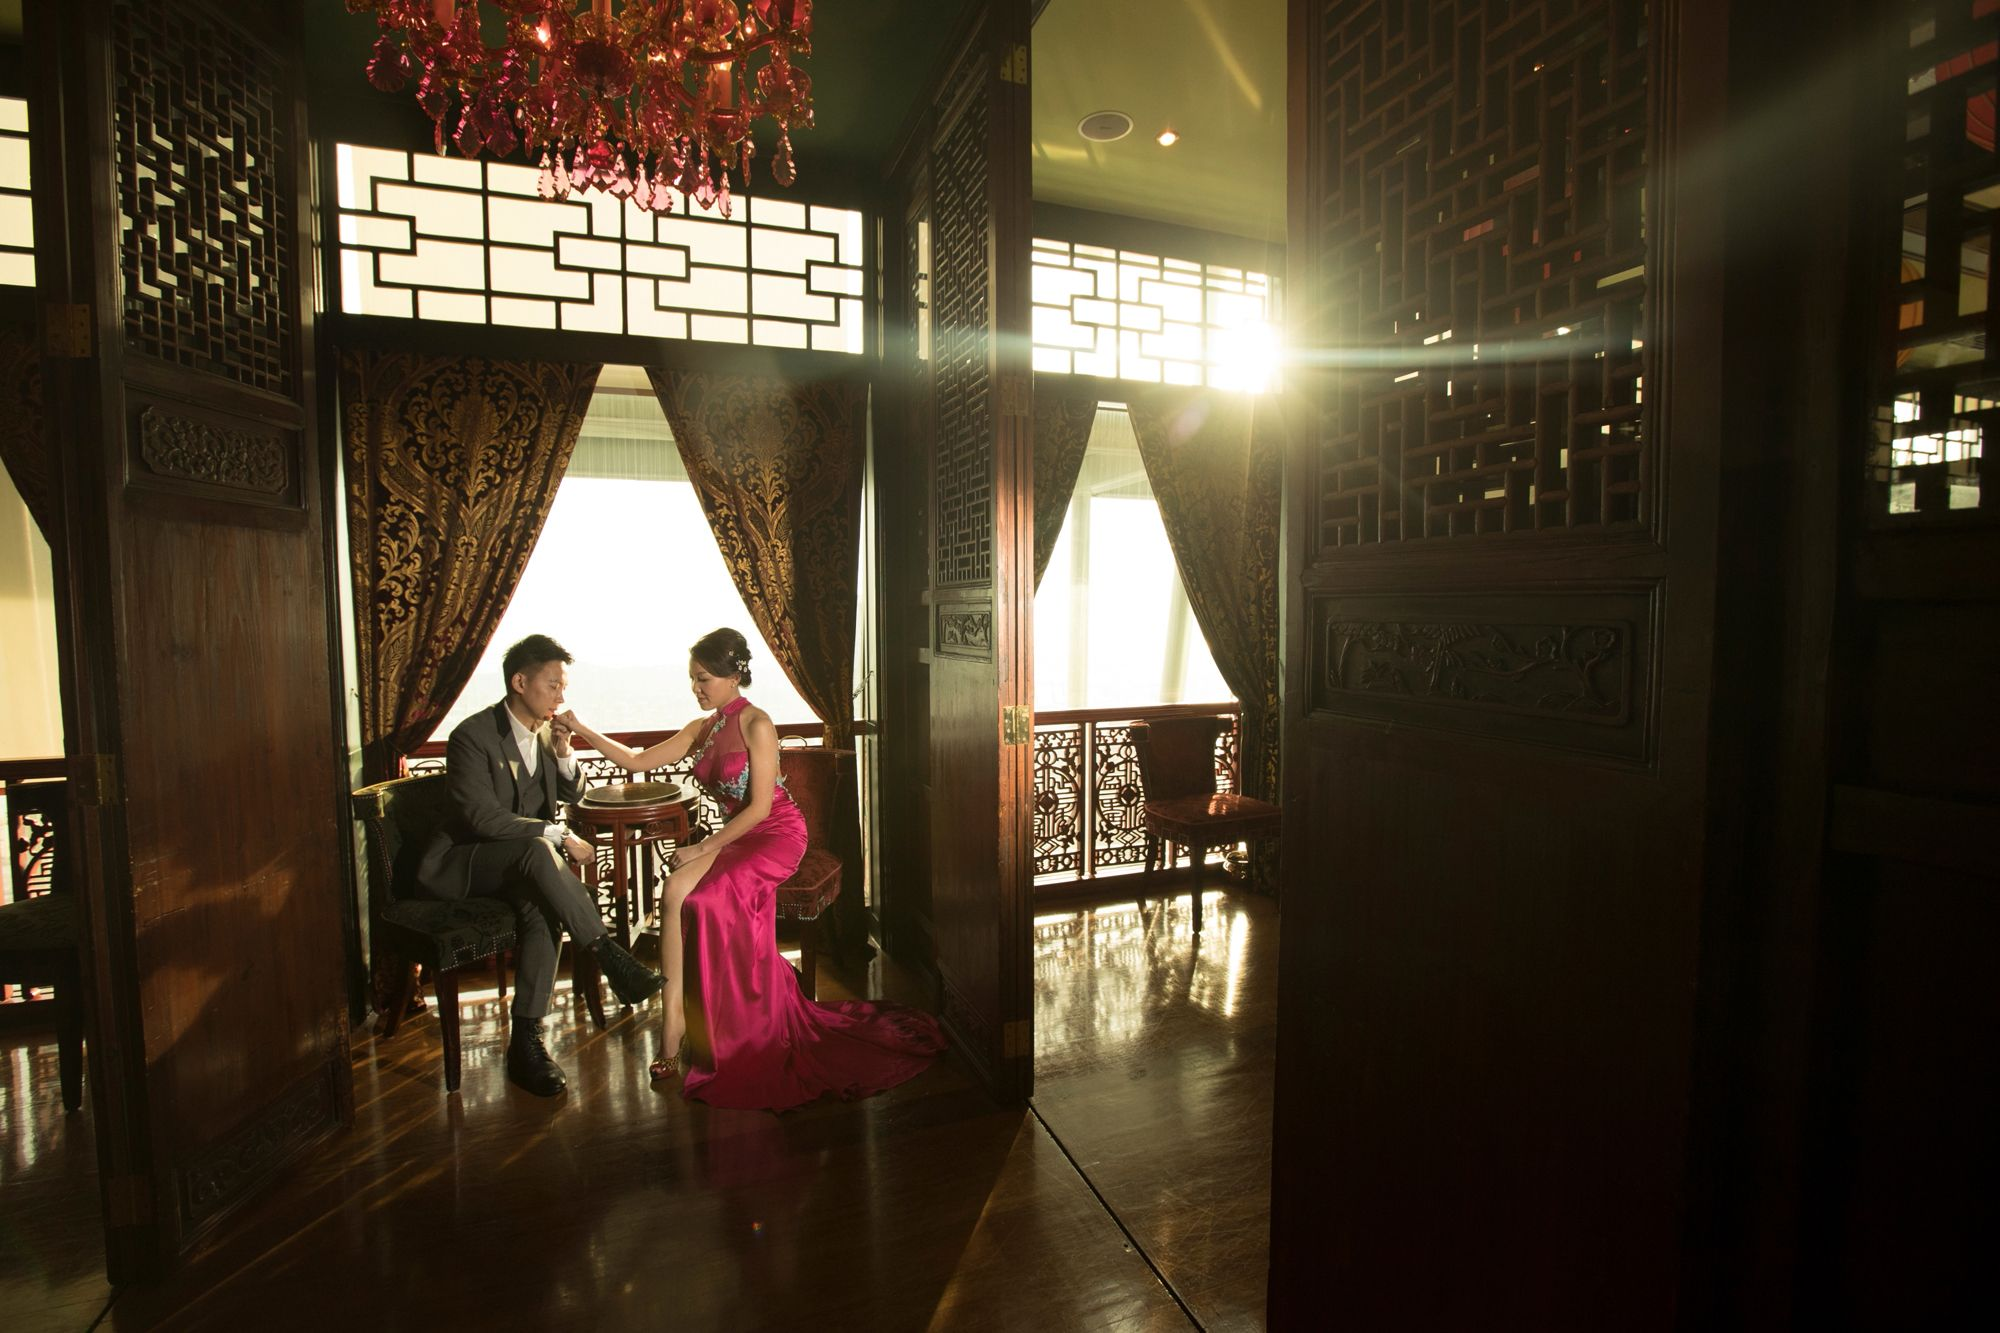 China Club Singapore: An Exclusive Wedding Venue That Pays Homage To Chinese Traditions